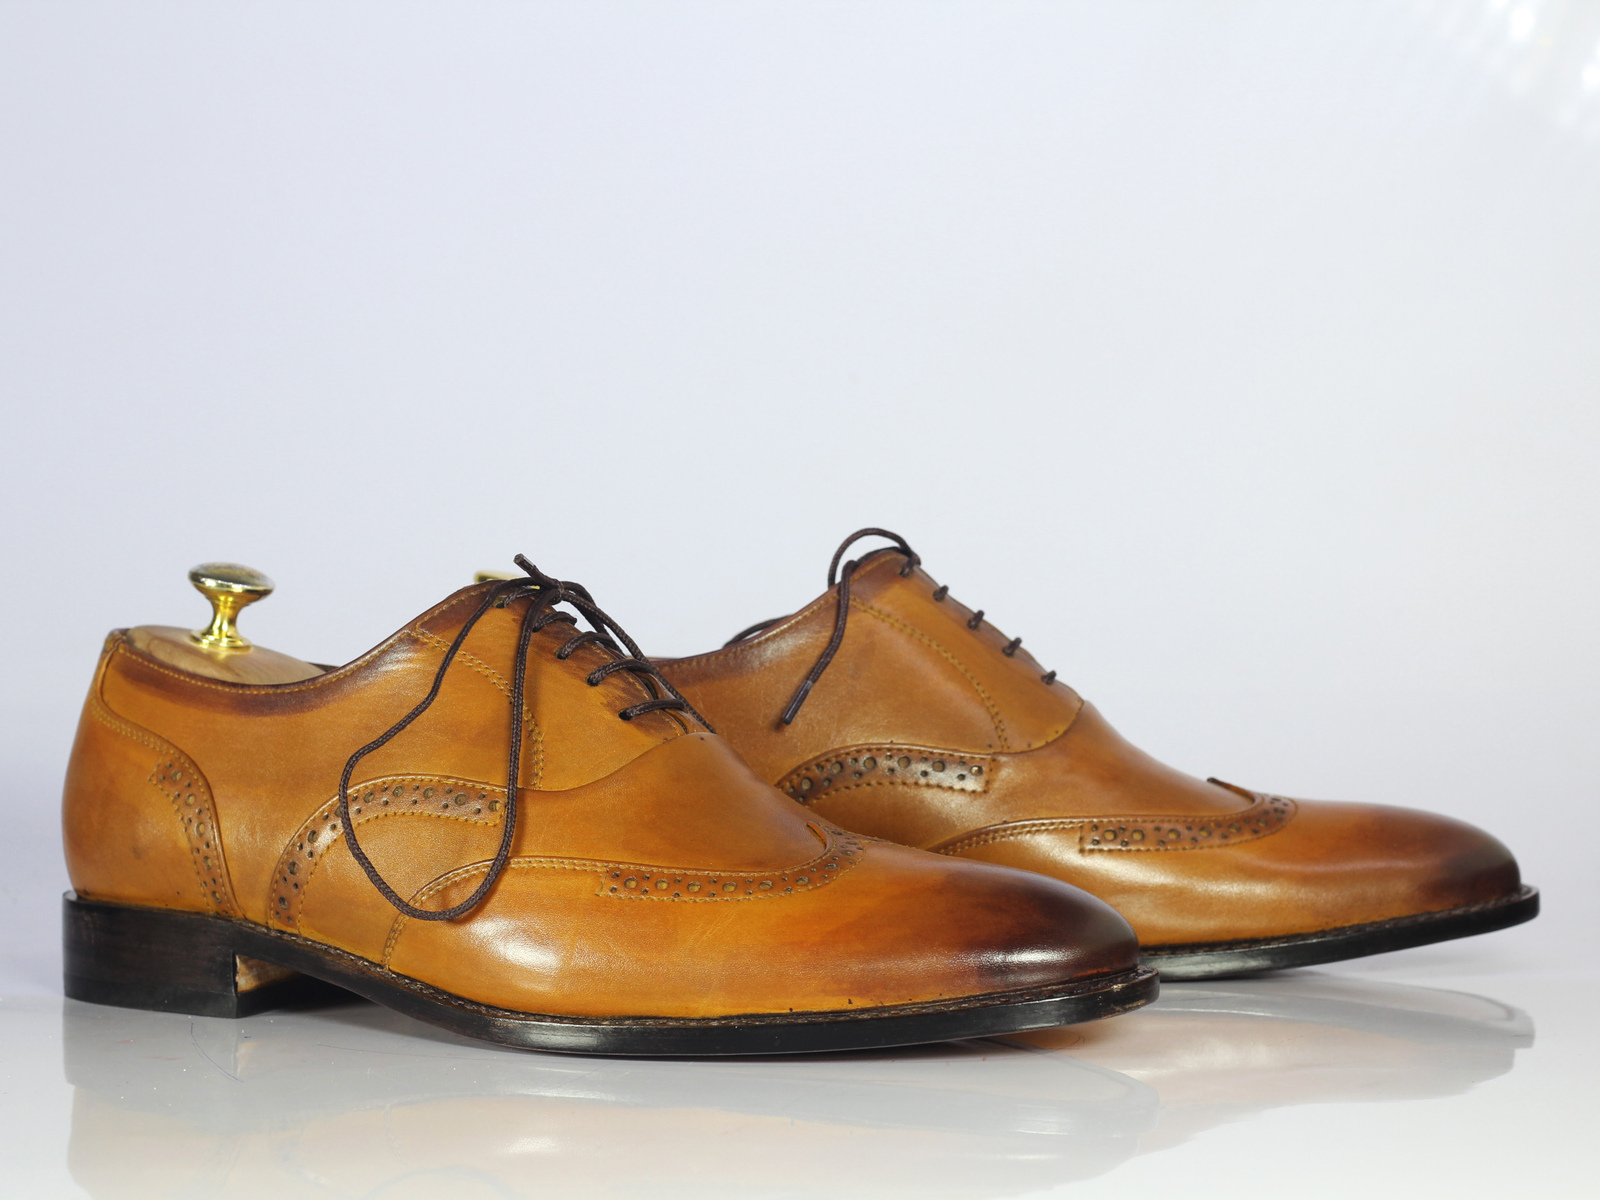 Handmade Men's Tan Wing Tip Lace Up Oxford Leather Shoes